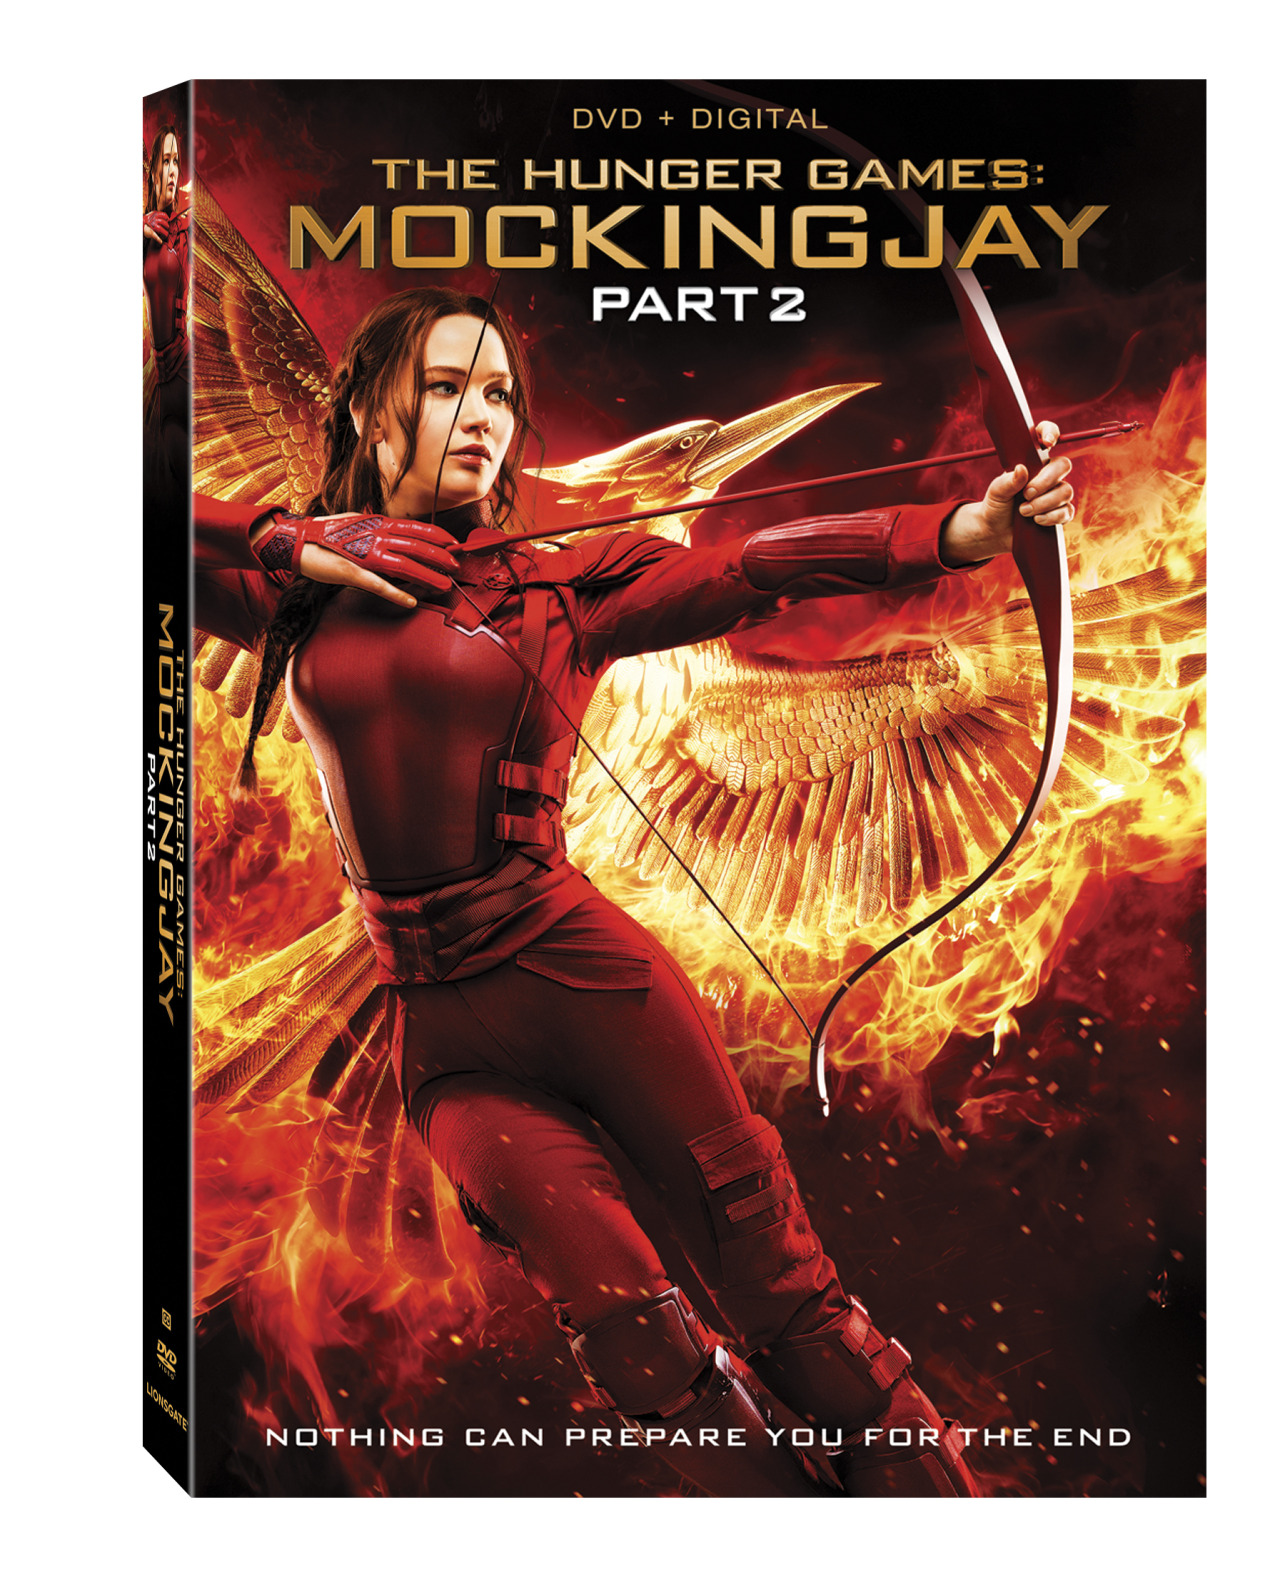 The hunger games mockingjay part 2 release date in Australia